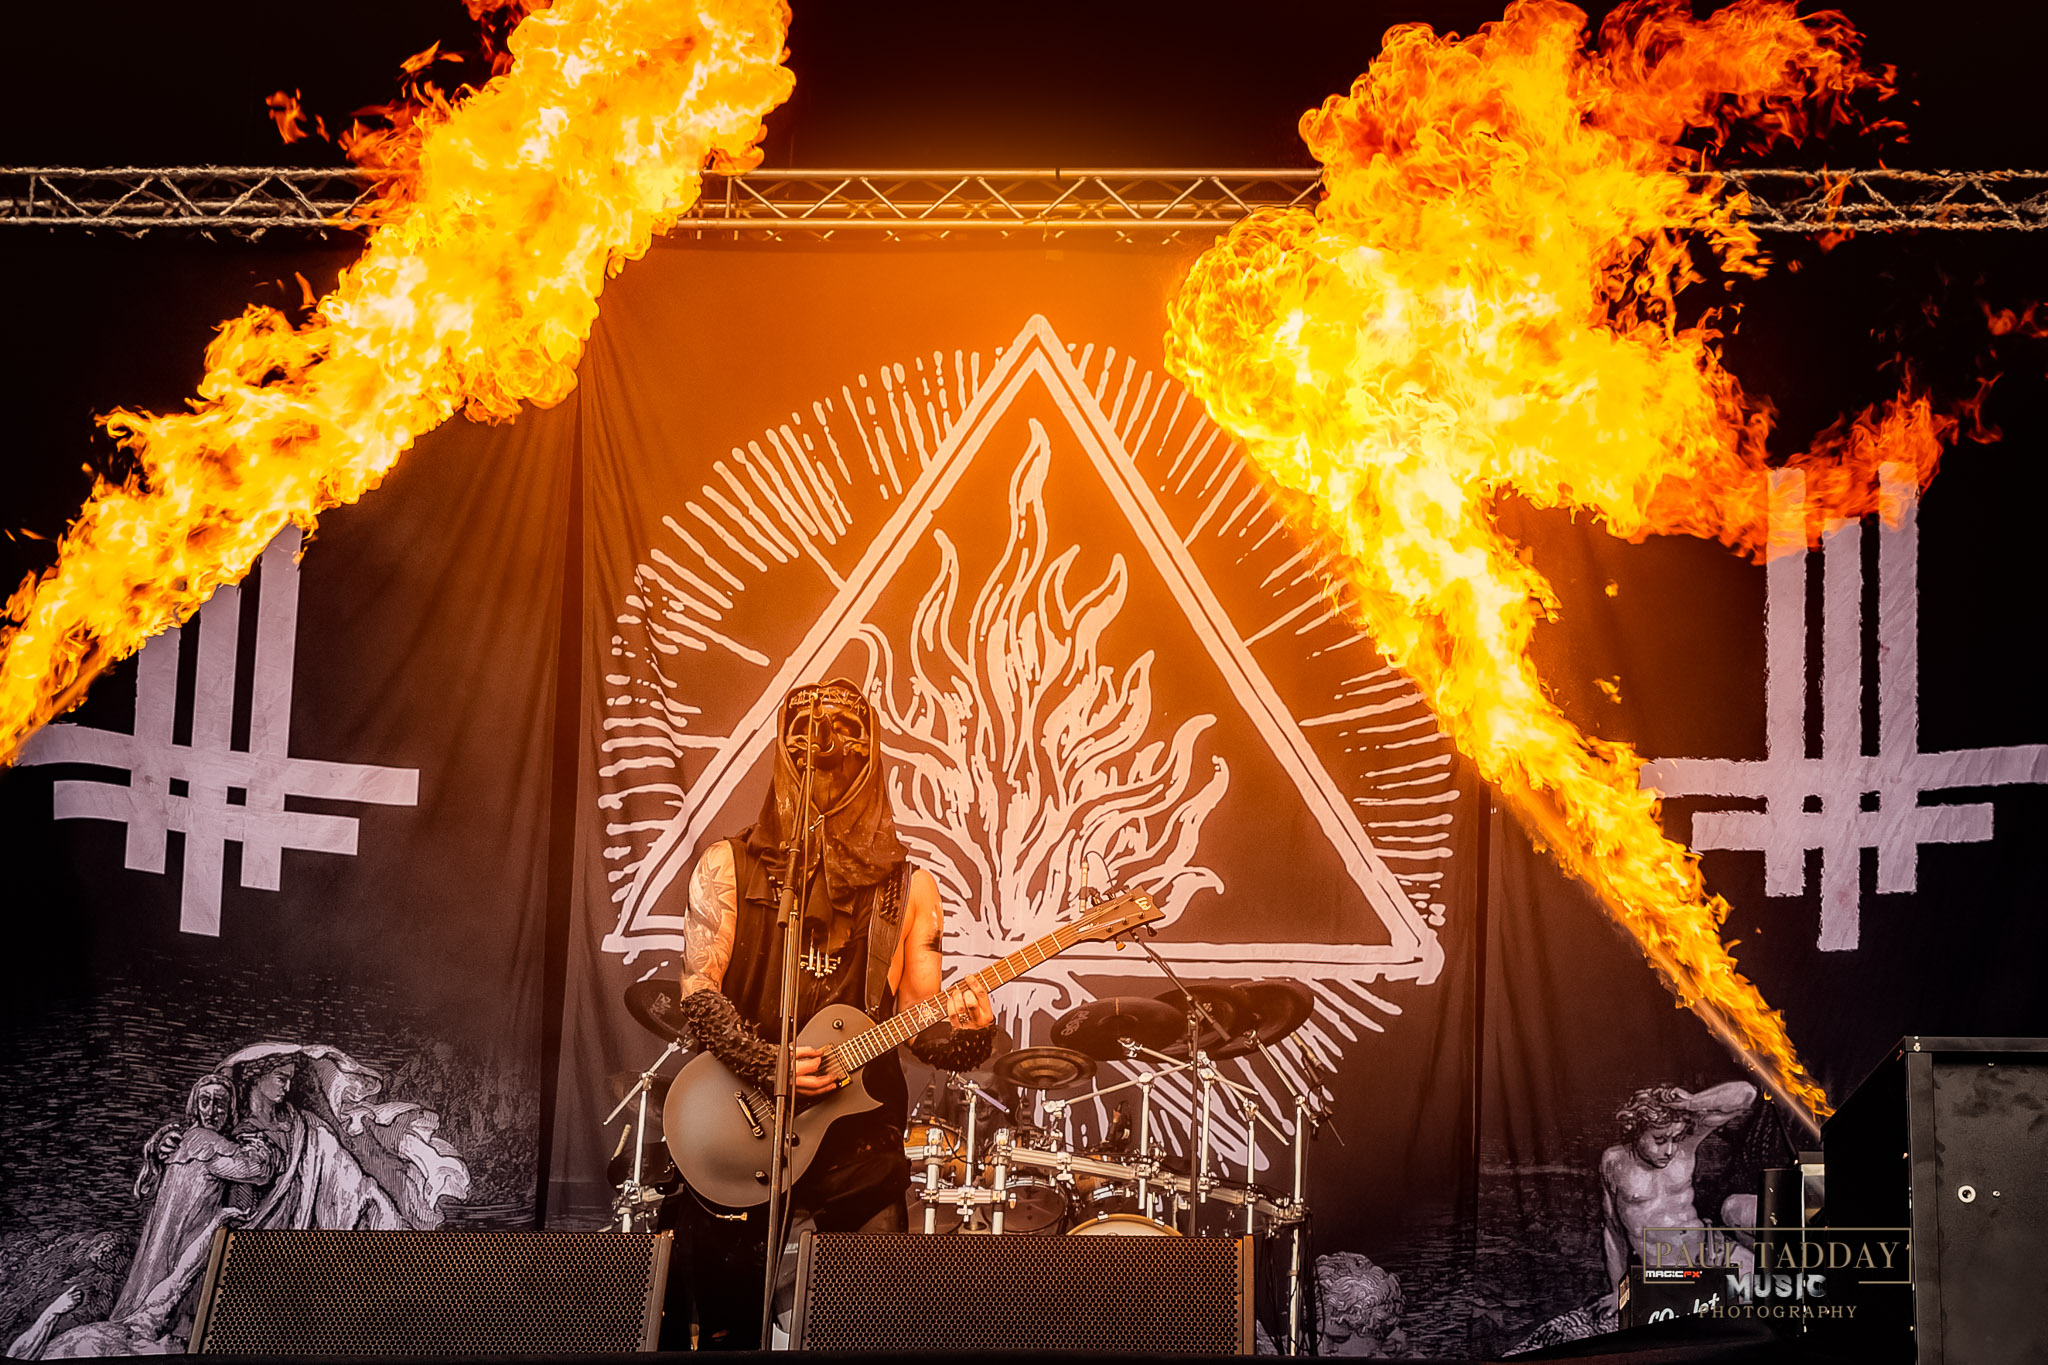 behemoth - download melbourne - march 2019 - web - paul tadday photography - 1.jpg